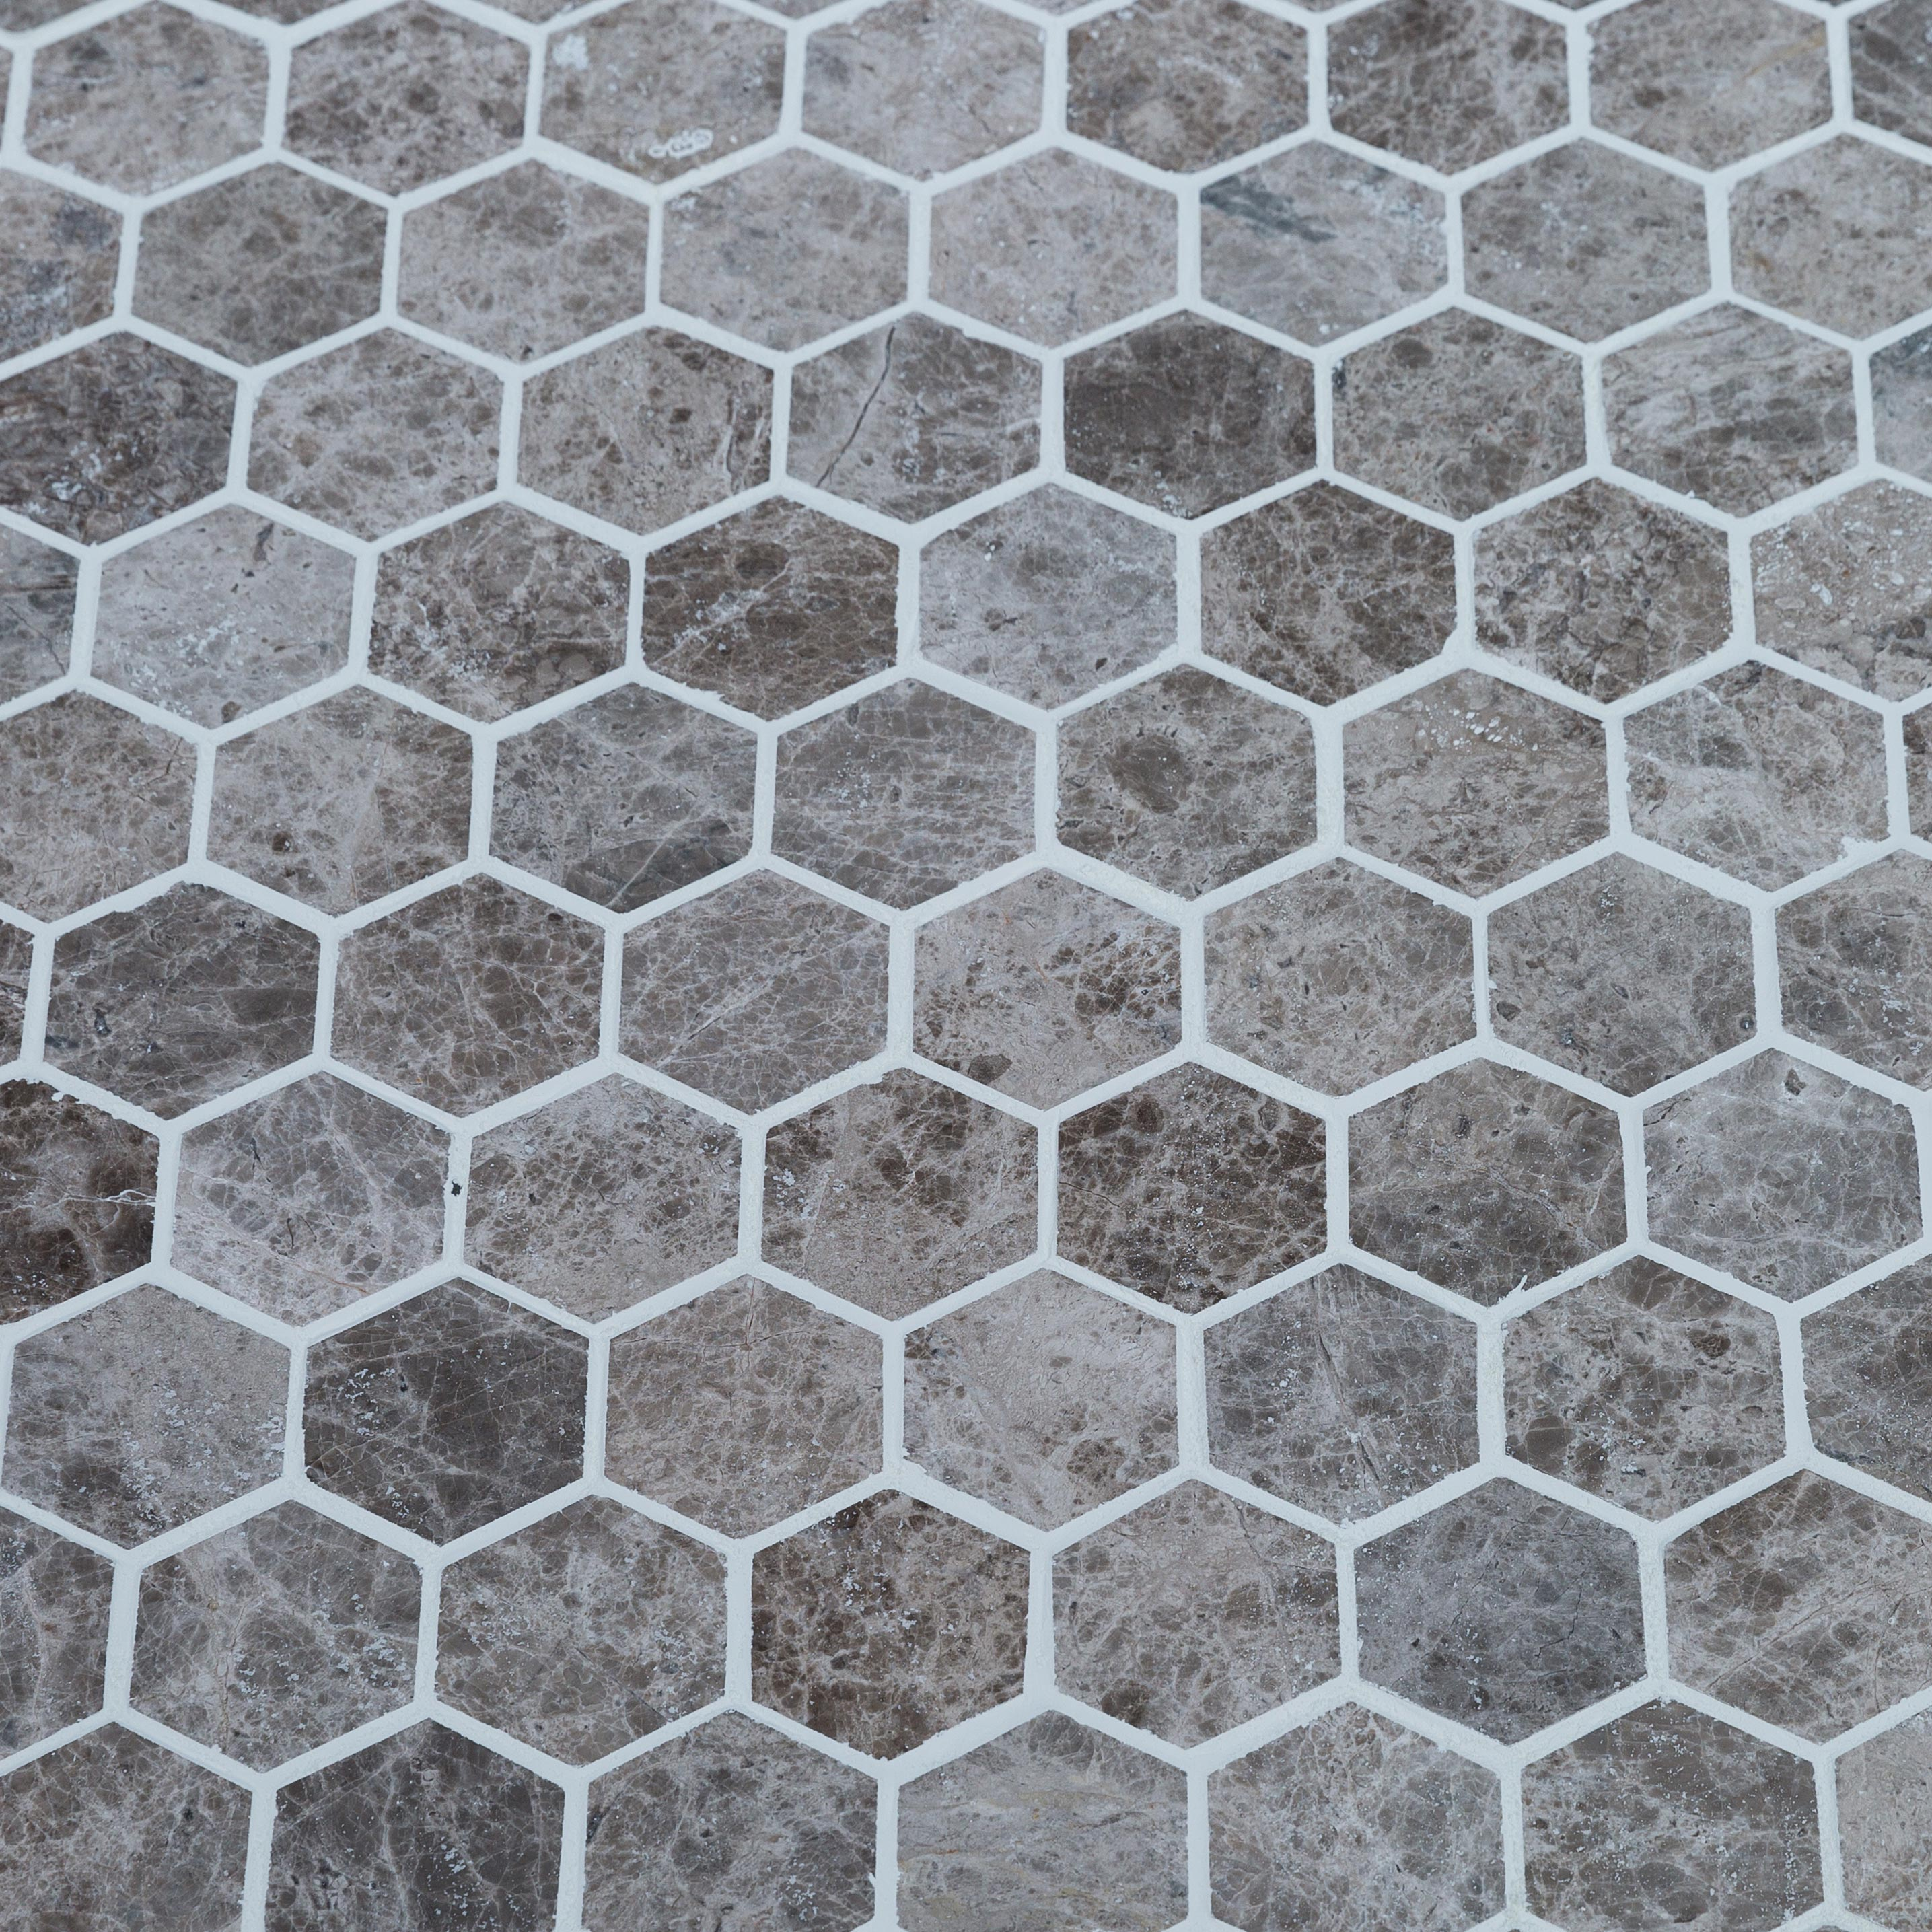 6-marble_mosaic_hexagon__silver-emprador_polished_www.thulahome.com_grout_angle_view_8921